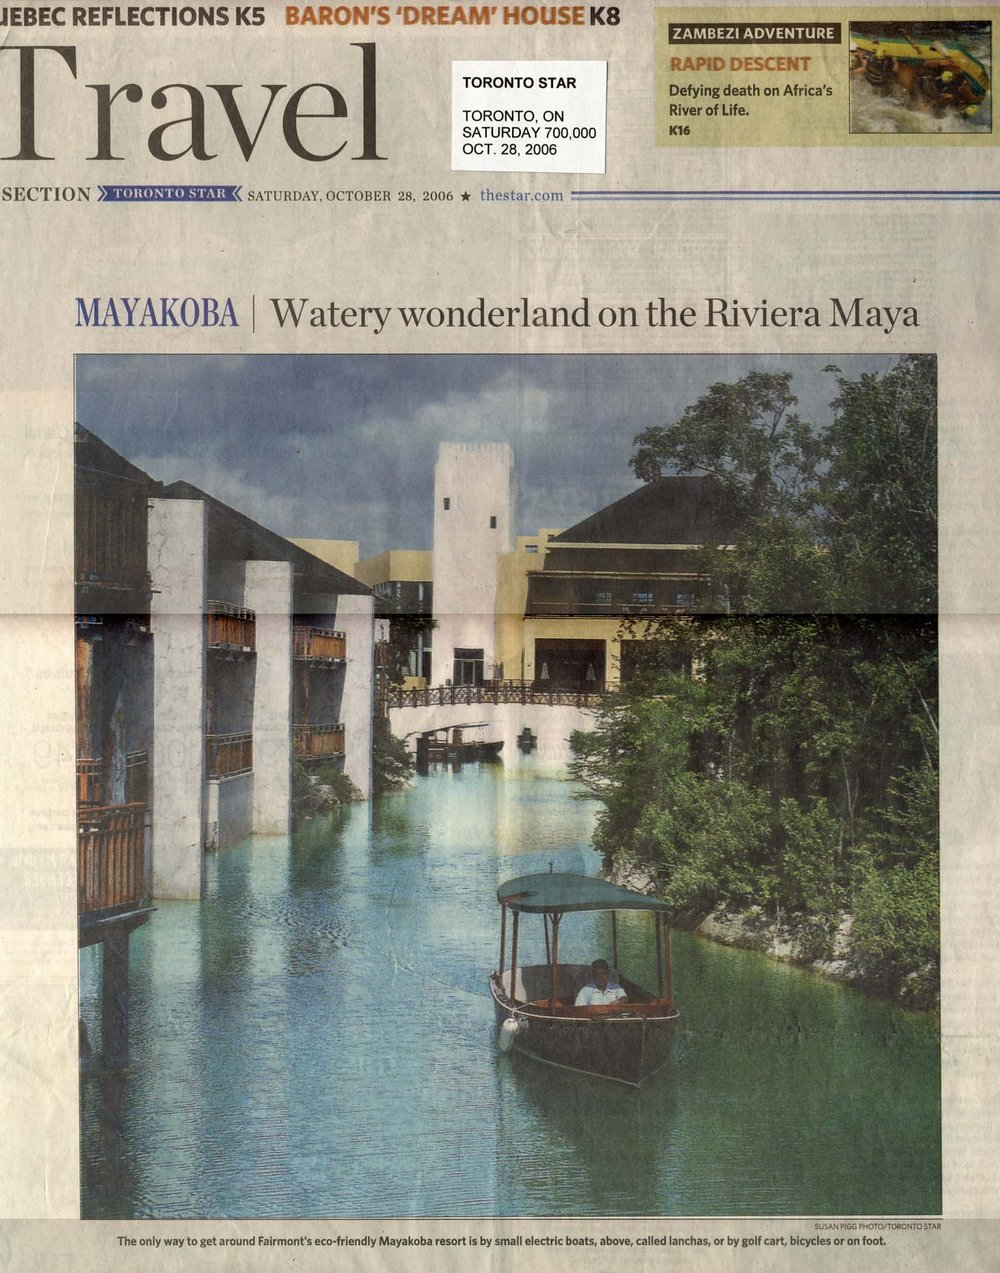 Mayakoba: Water wonderland on the Riviera Maya TORONTO STAR